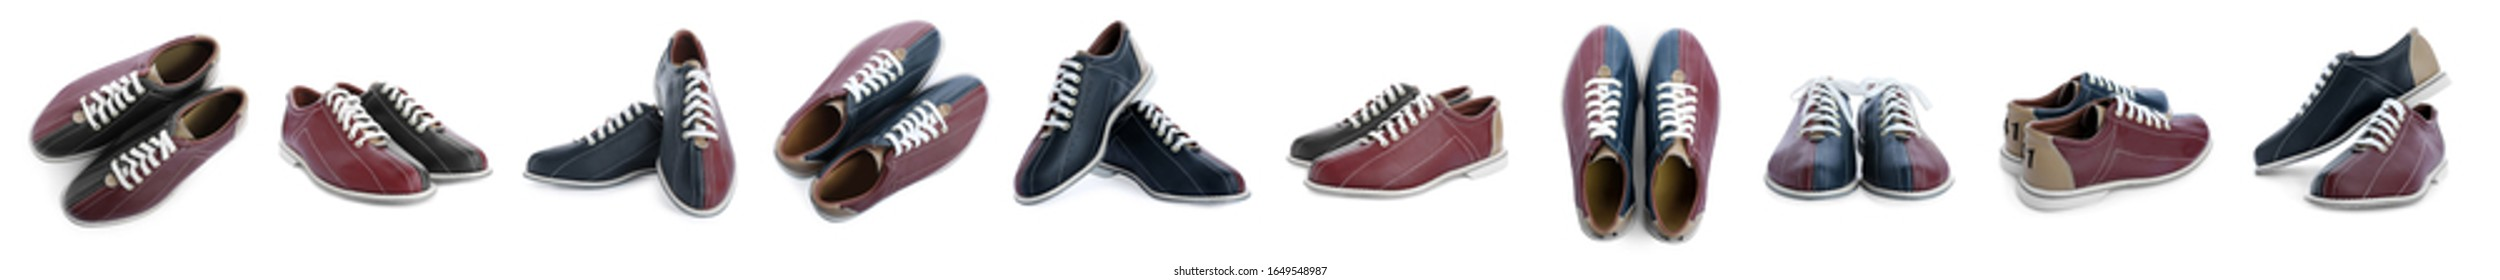 Set of bowling shoes on white background. Banner design